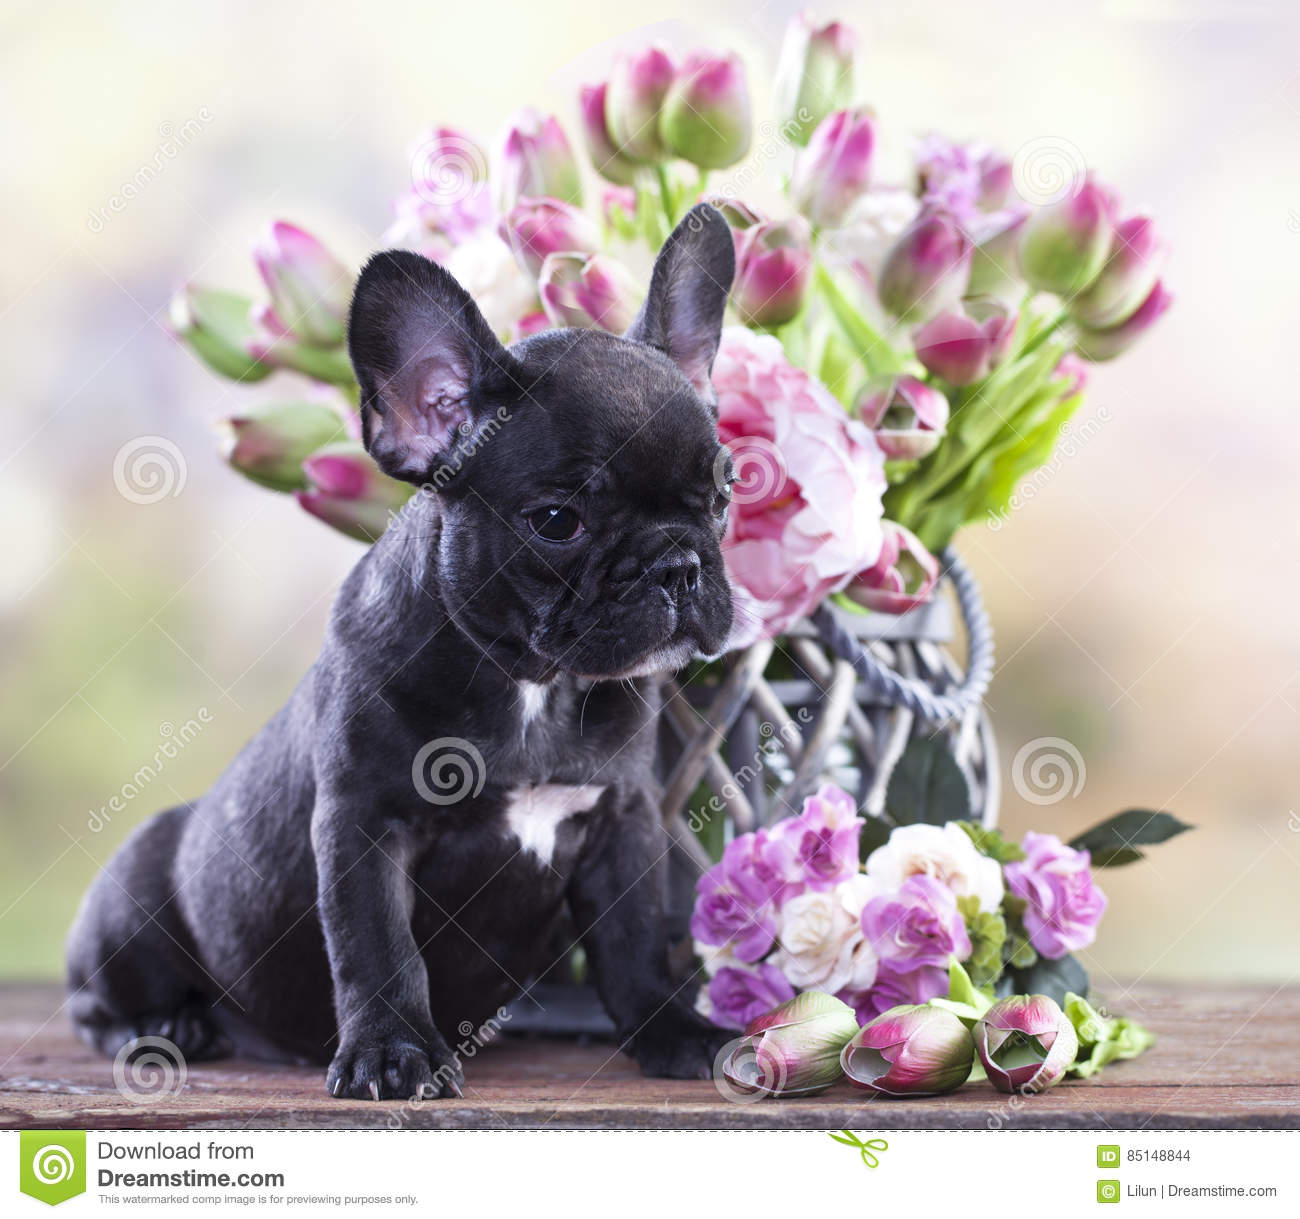 Bulldog Puppy And A Bouquet Of Flowers Stock Photo - Image of ...